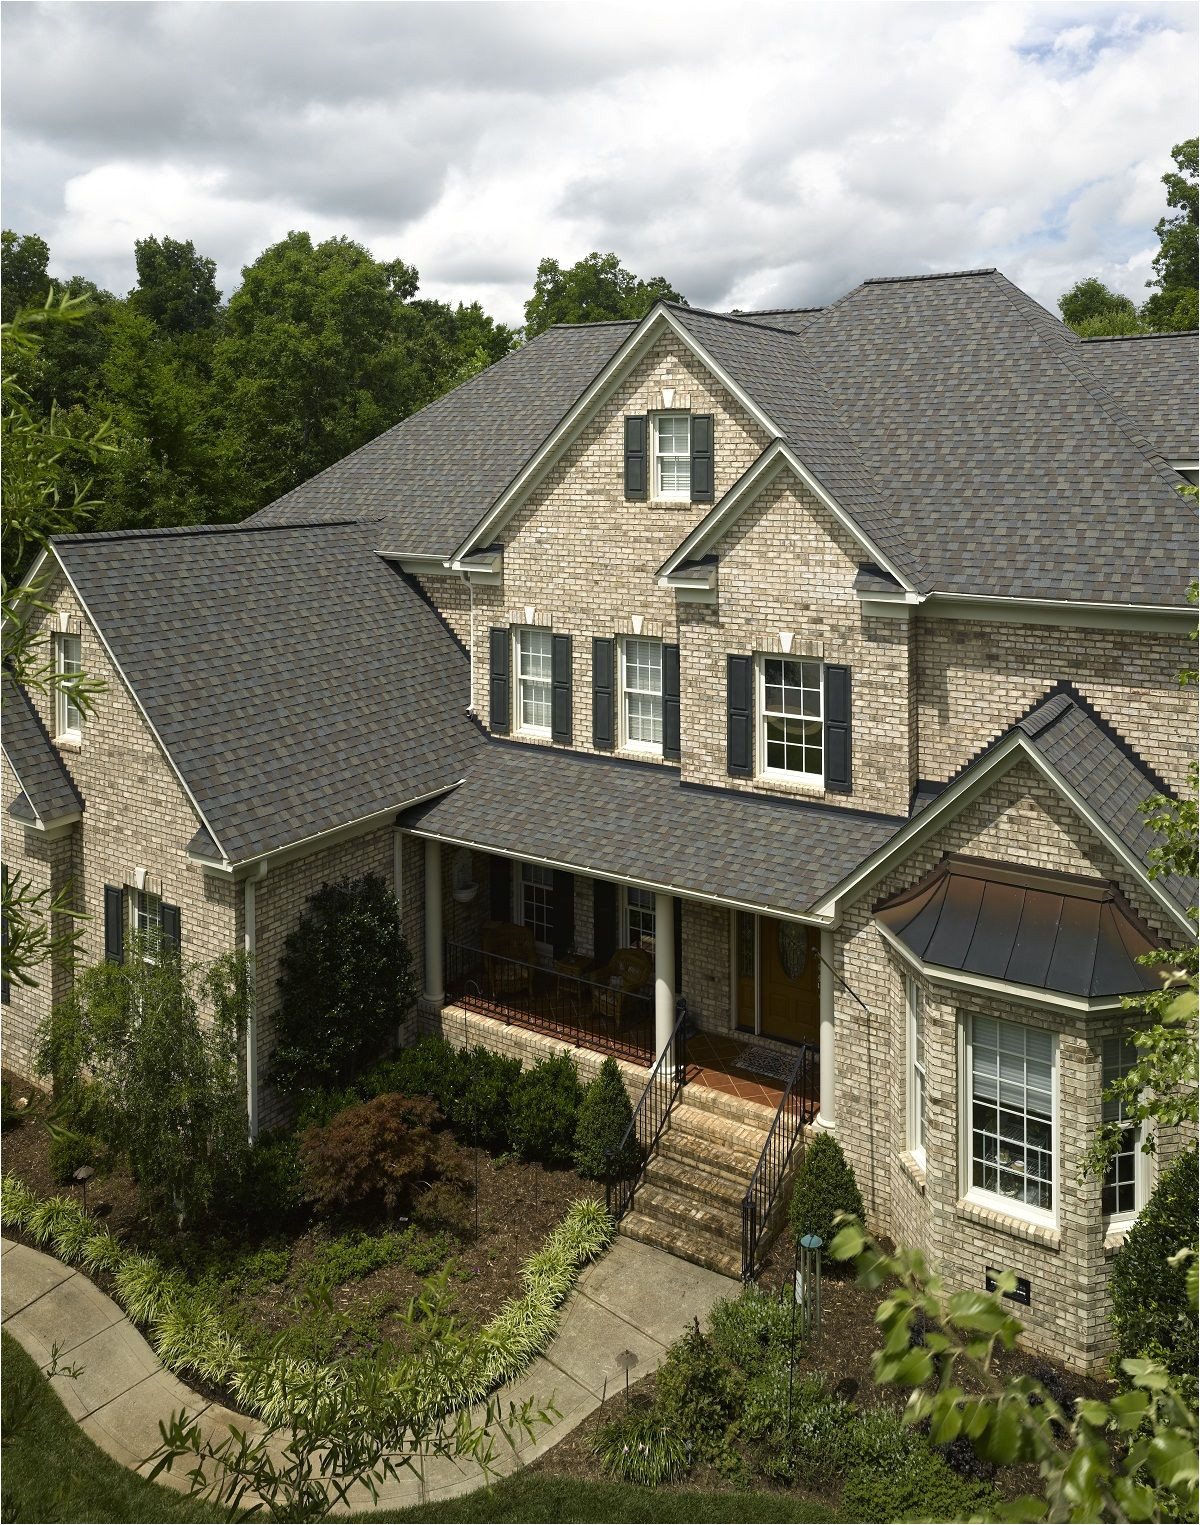 roofing photo gallery certainteed design center grand manor stonegate gray project exterior in 2019 pinterest house roof shingle colors and roof